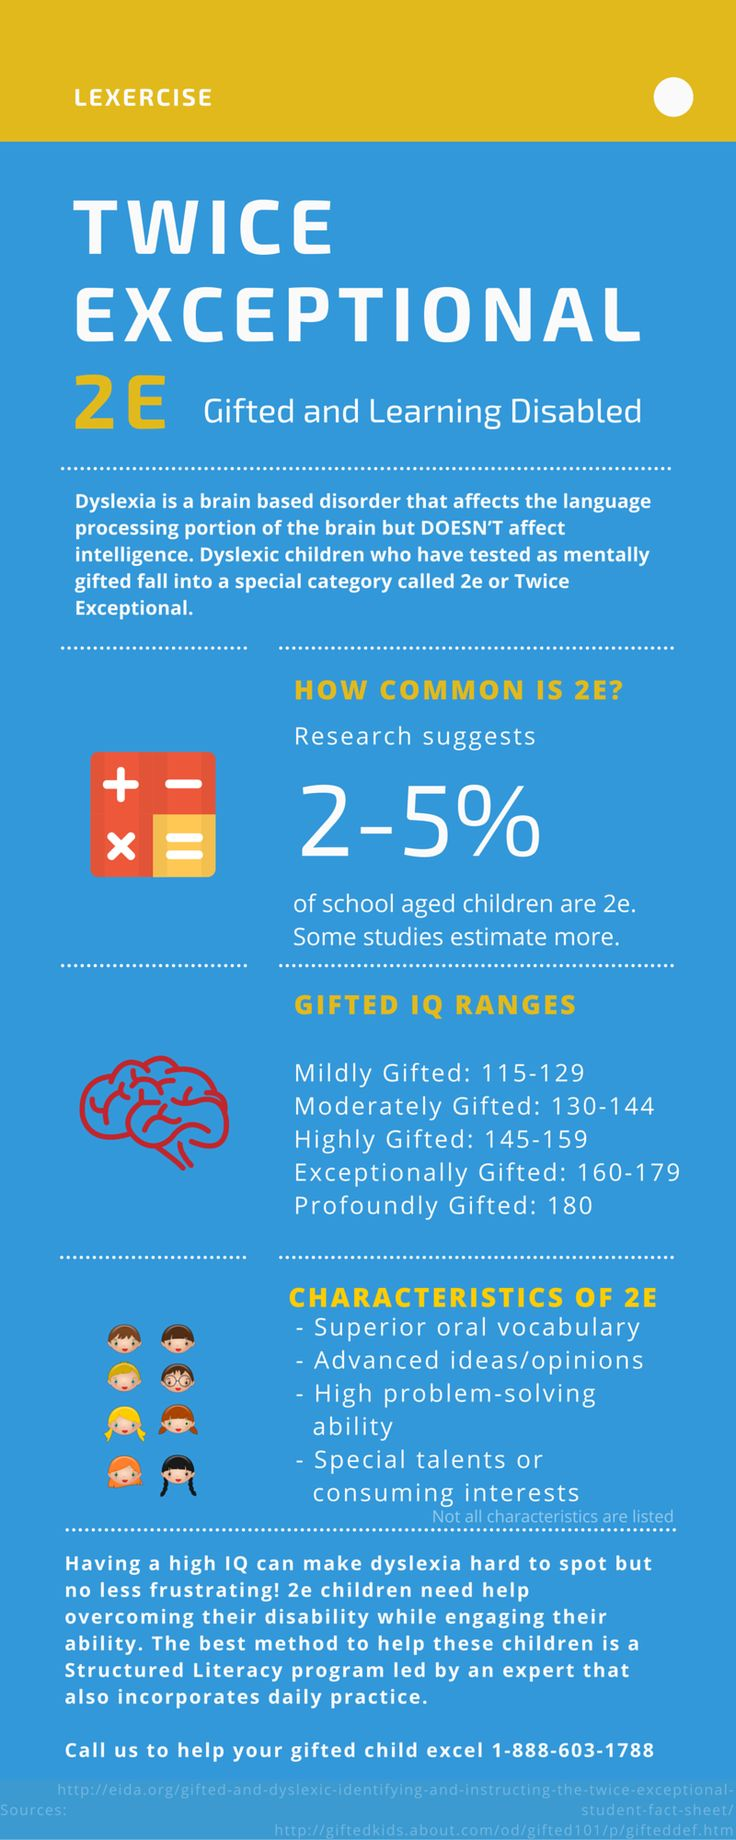 An awesome infographic about twice exceptional children